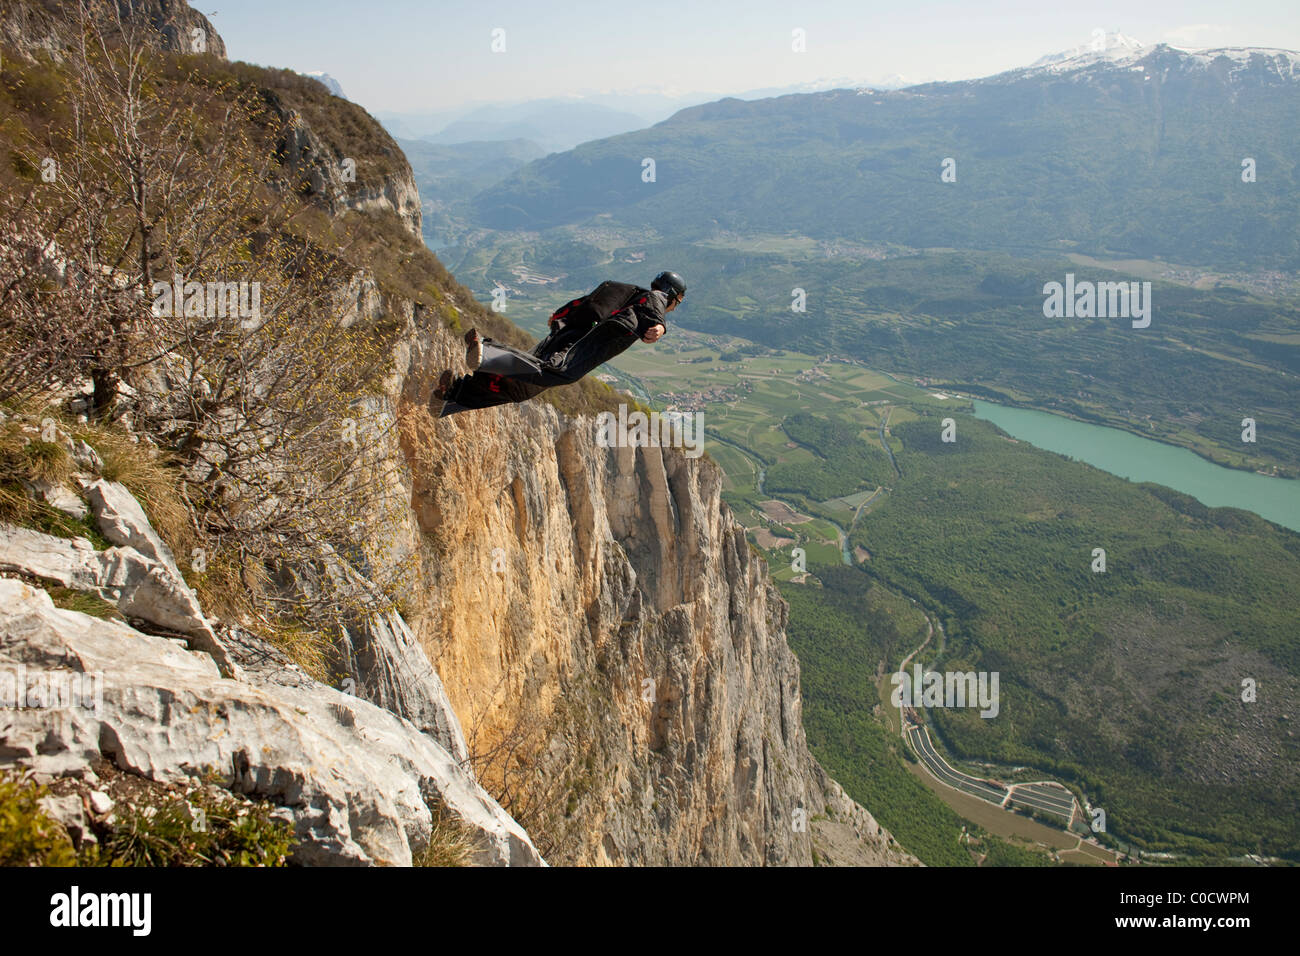 BASE diver within a wingsuit jumps from cliff and flys down the valley. - Stock Image